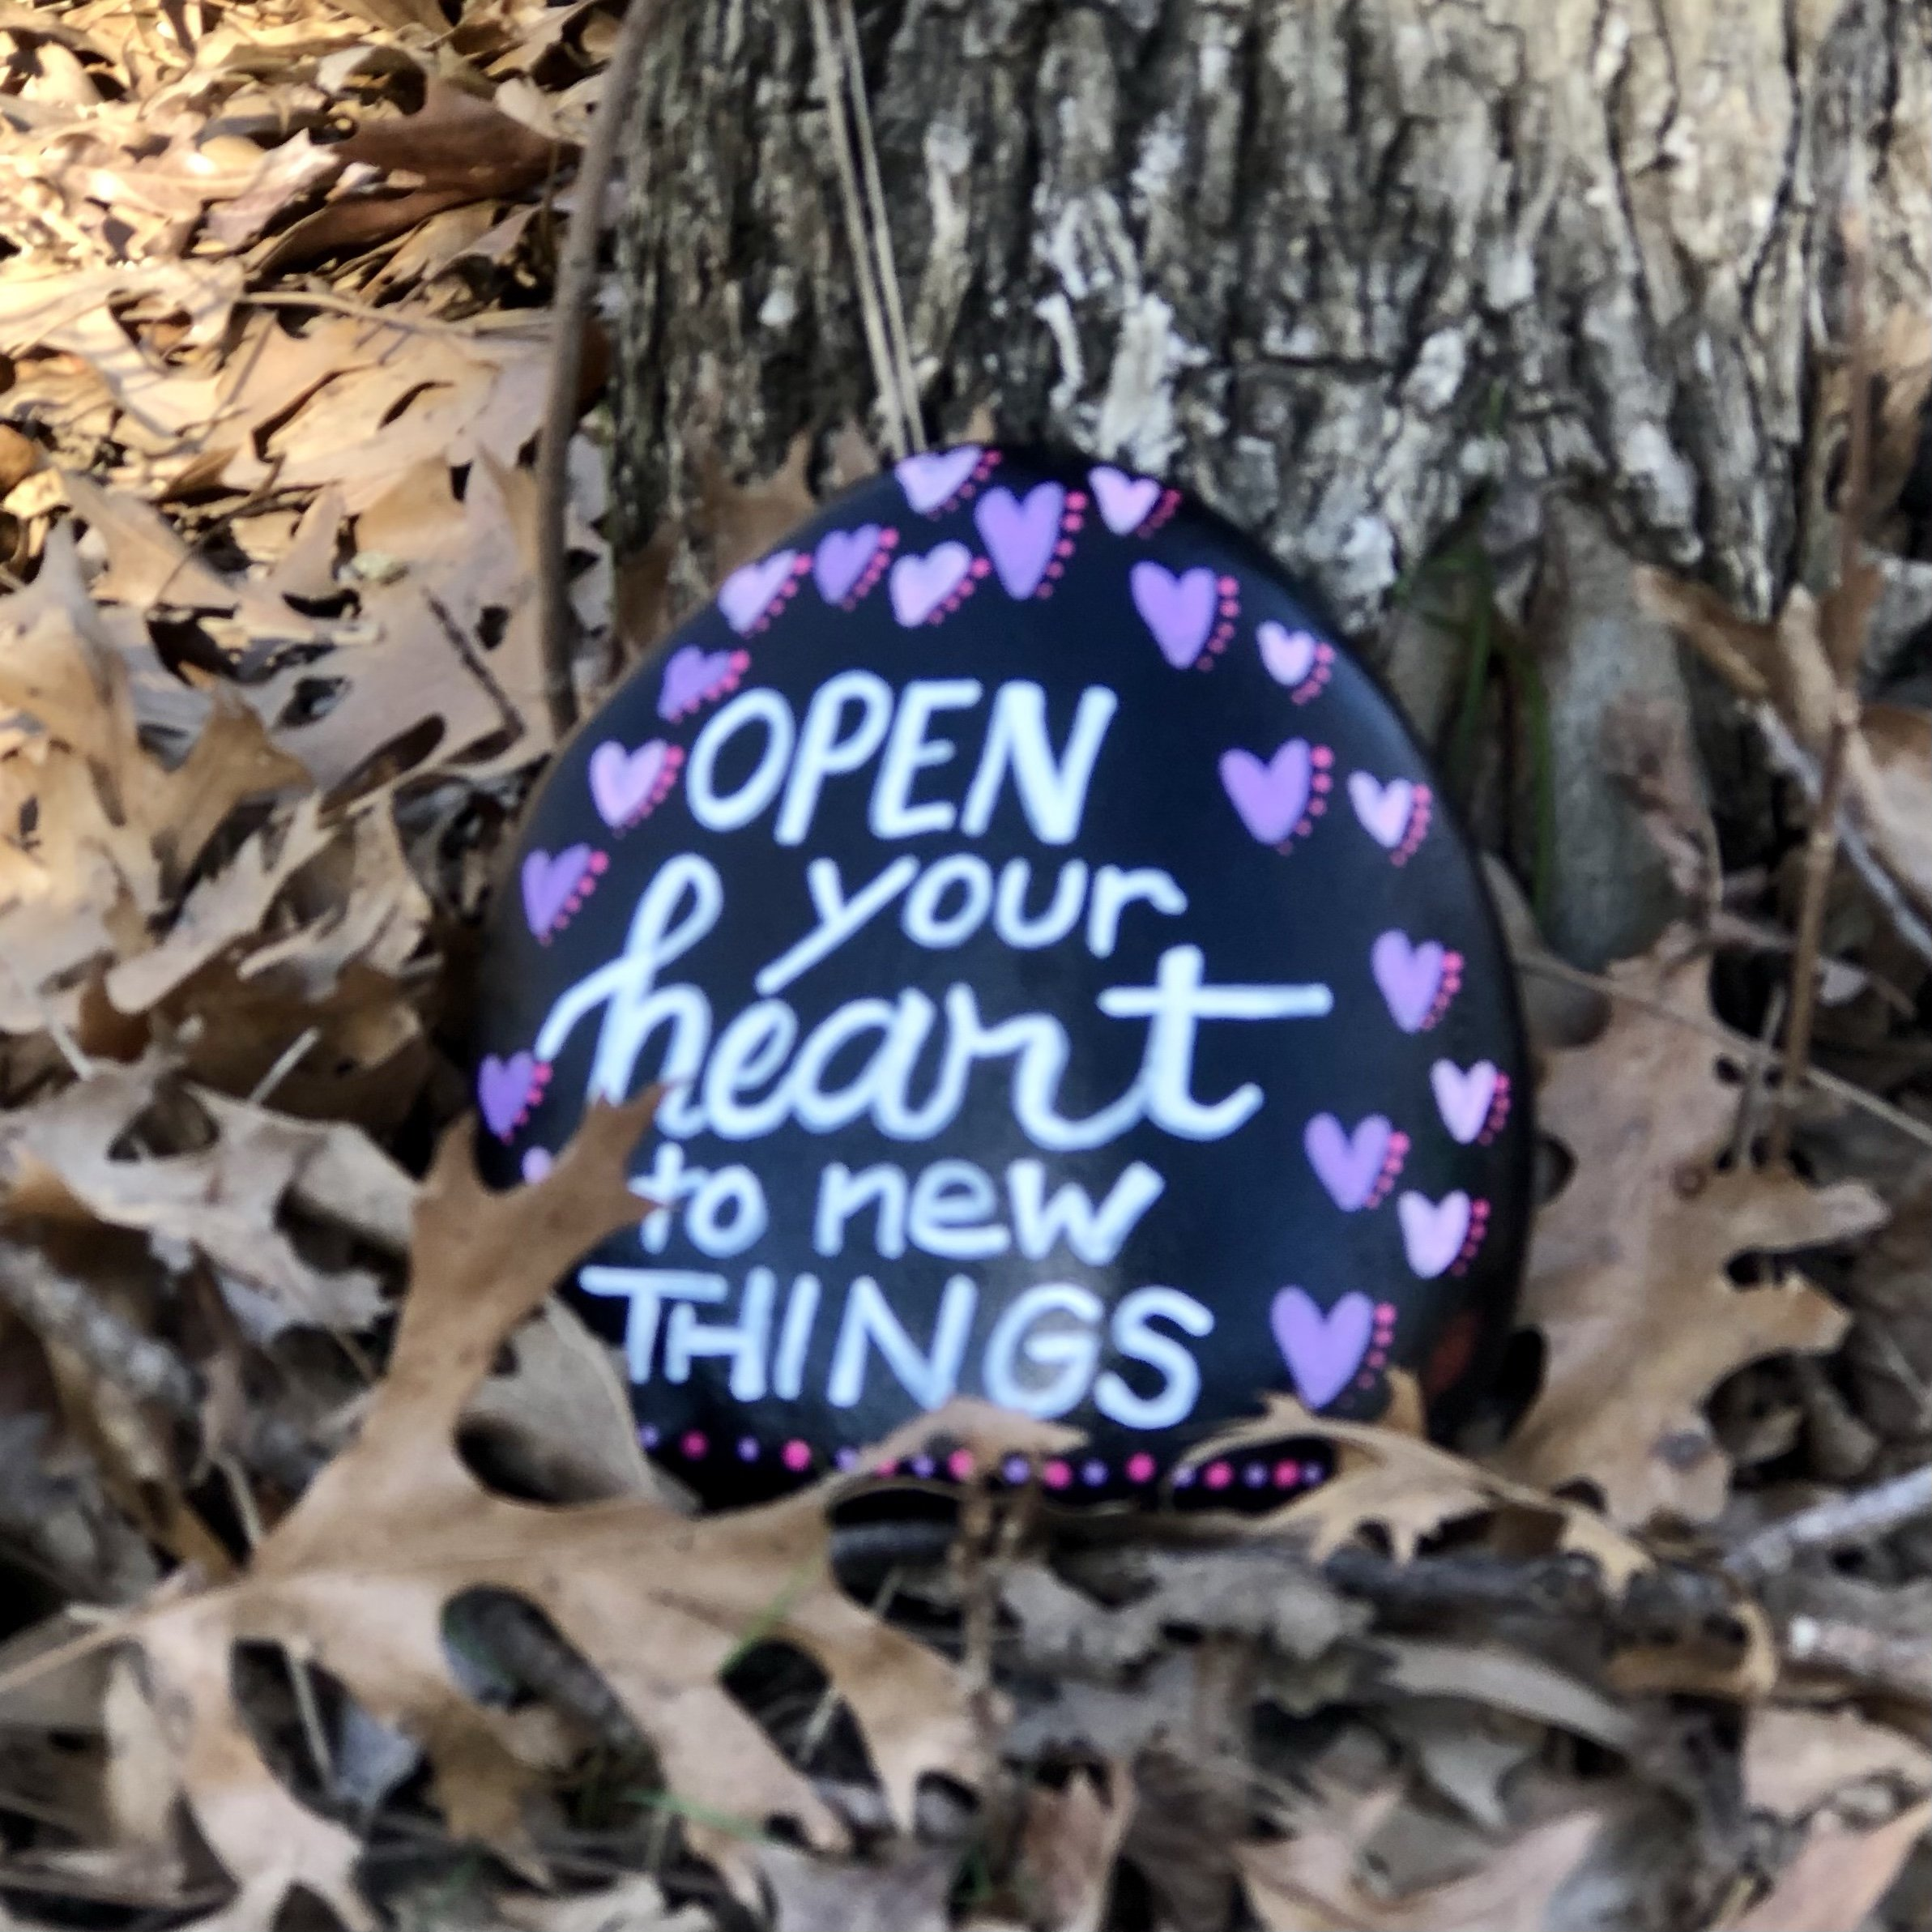 Open Your Heart to new things painted rock